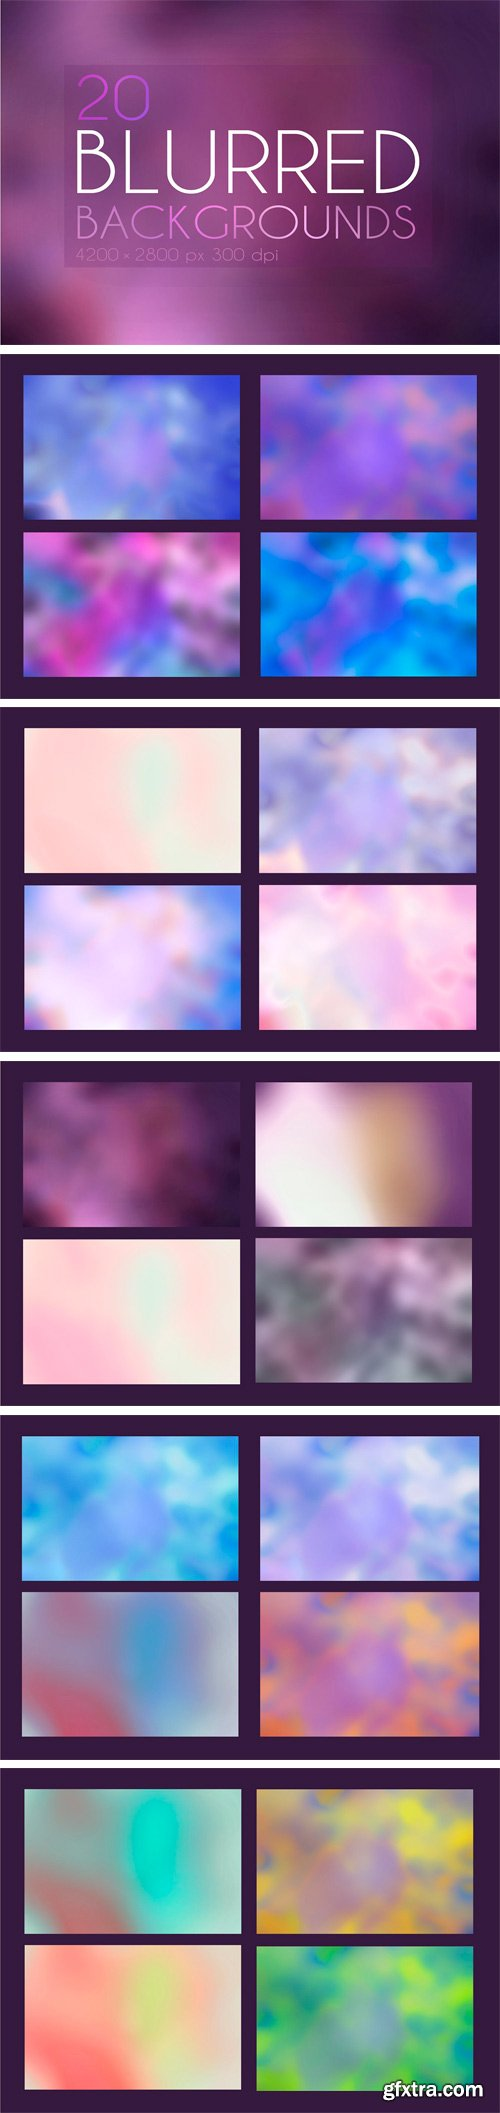 CM - Blurred Backgrounds 2510879